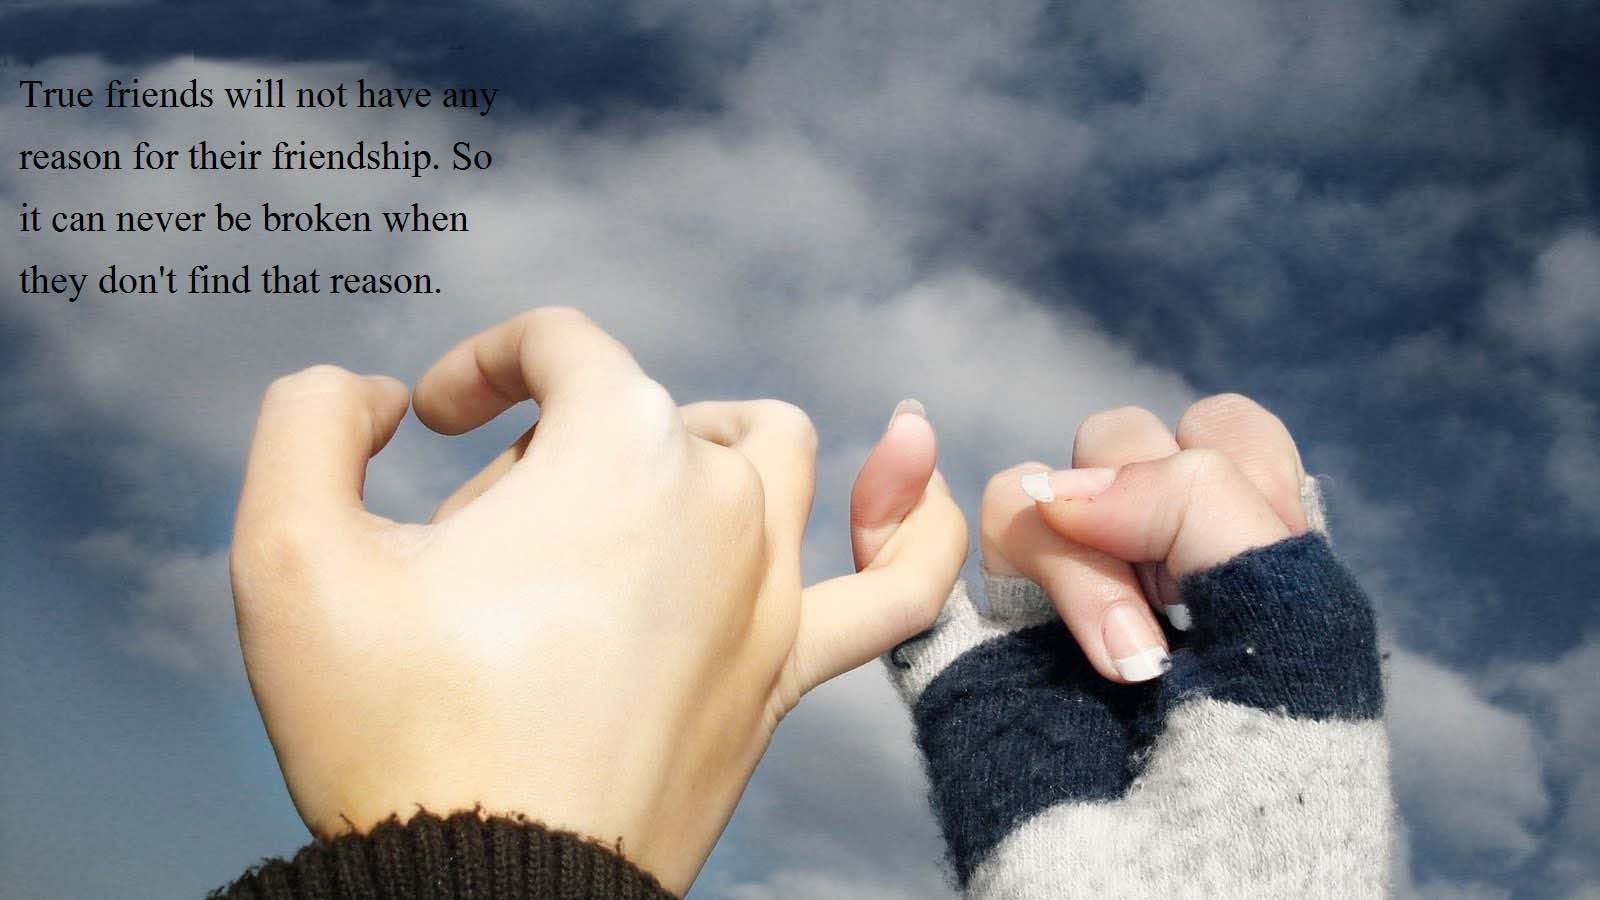 Friendship Greetings Message Wallpaper